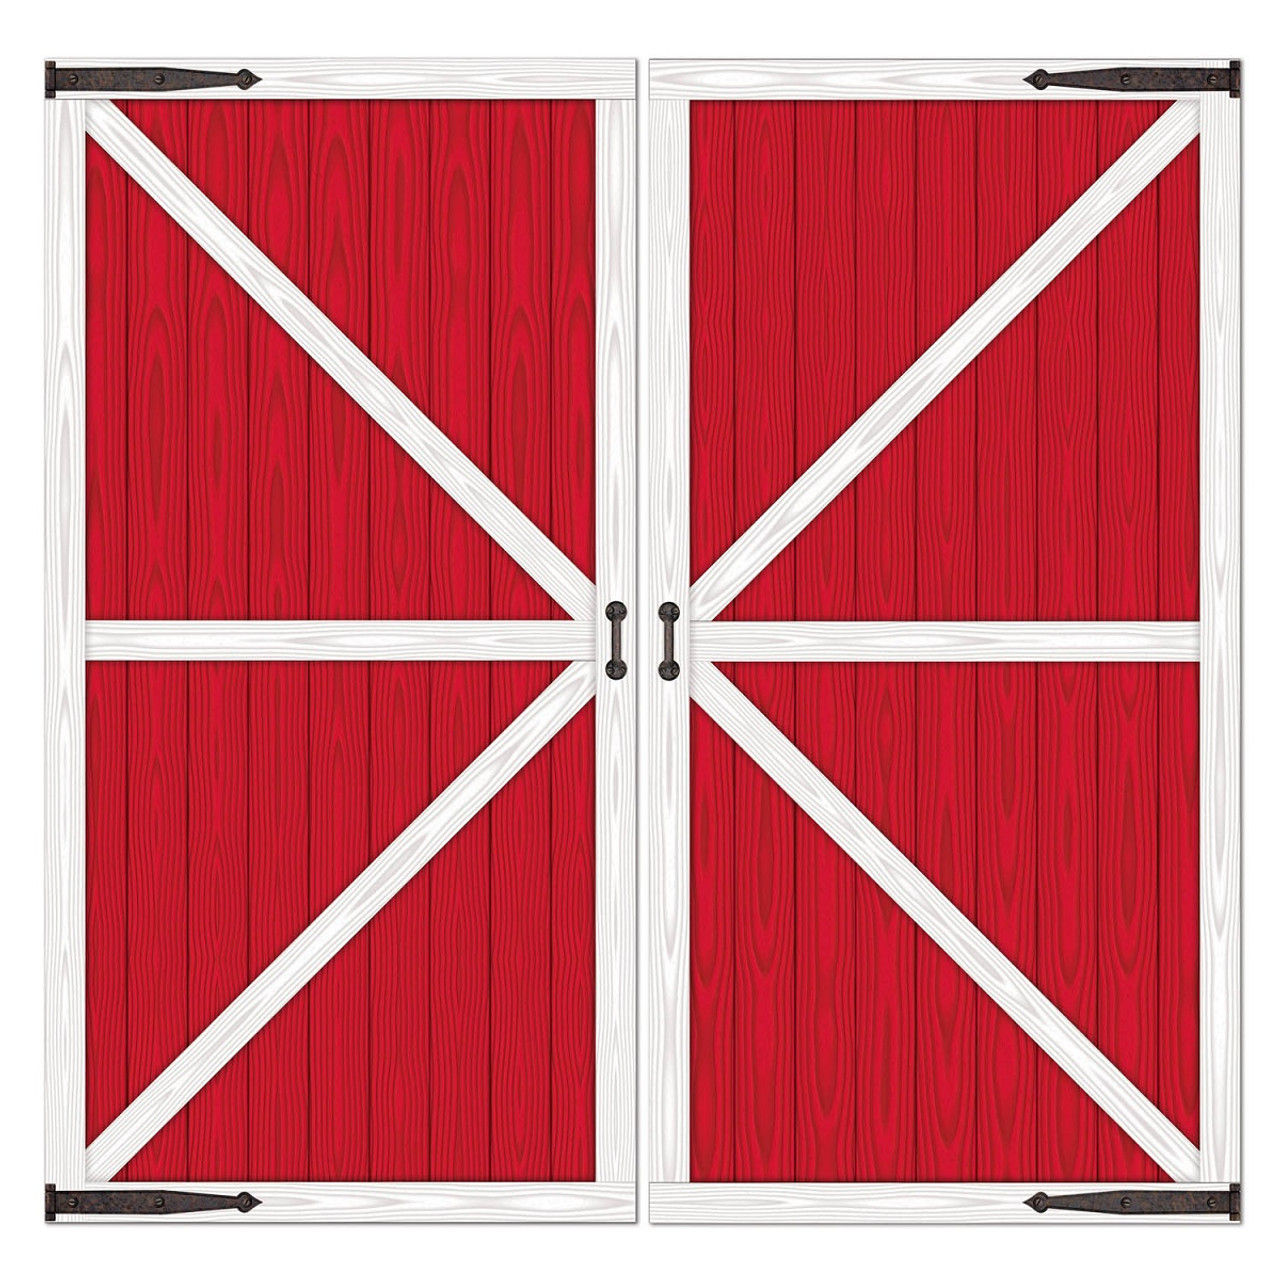 Pack Of 6 Red Barn Door Backdrop Wall Decorations 365 X 64